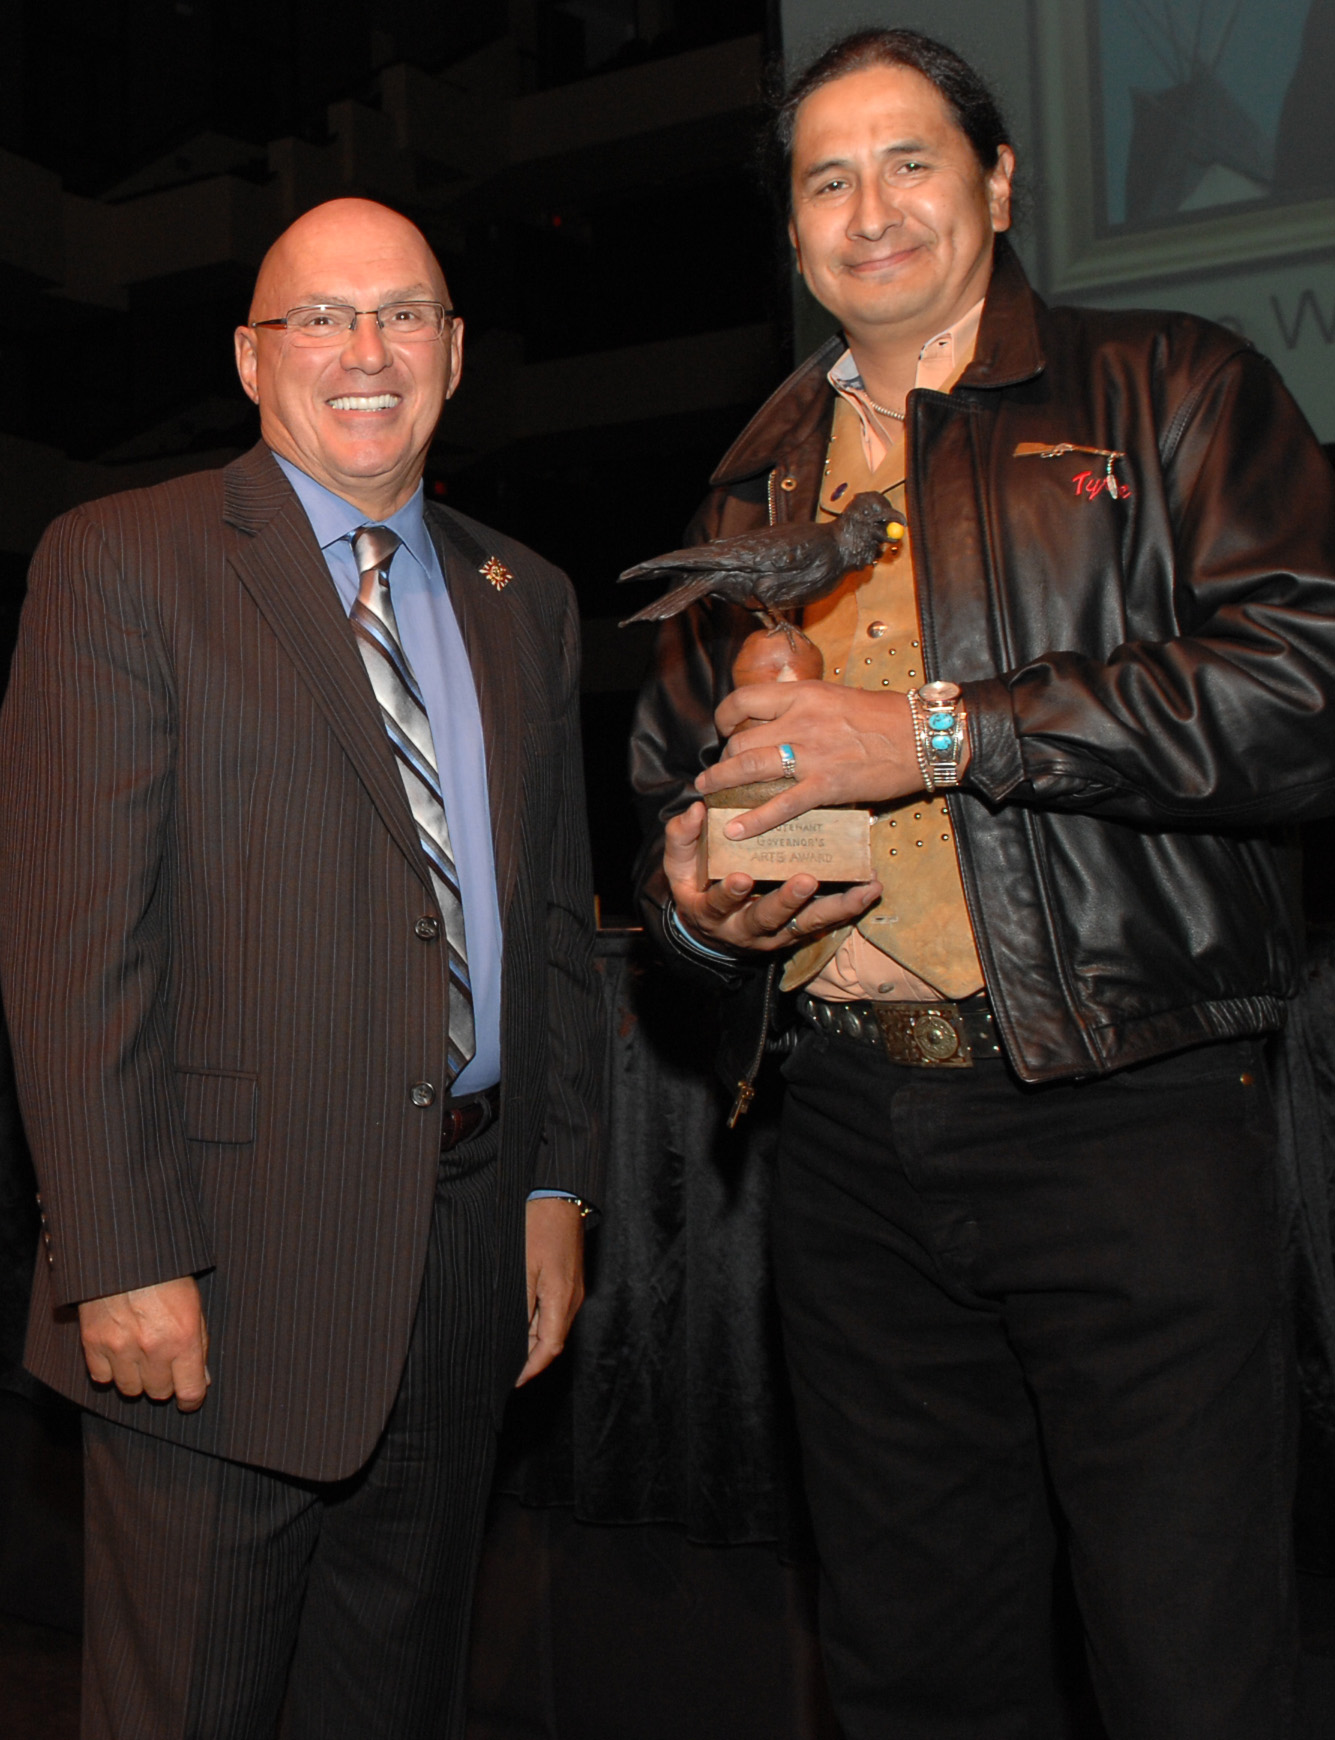 2008 Arts and Learning Recipient - Tyrone W. Tootoosis